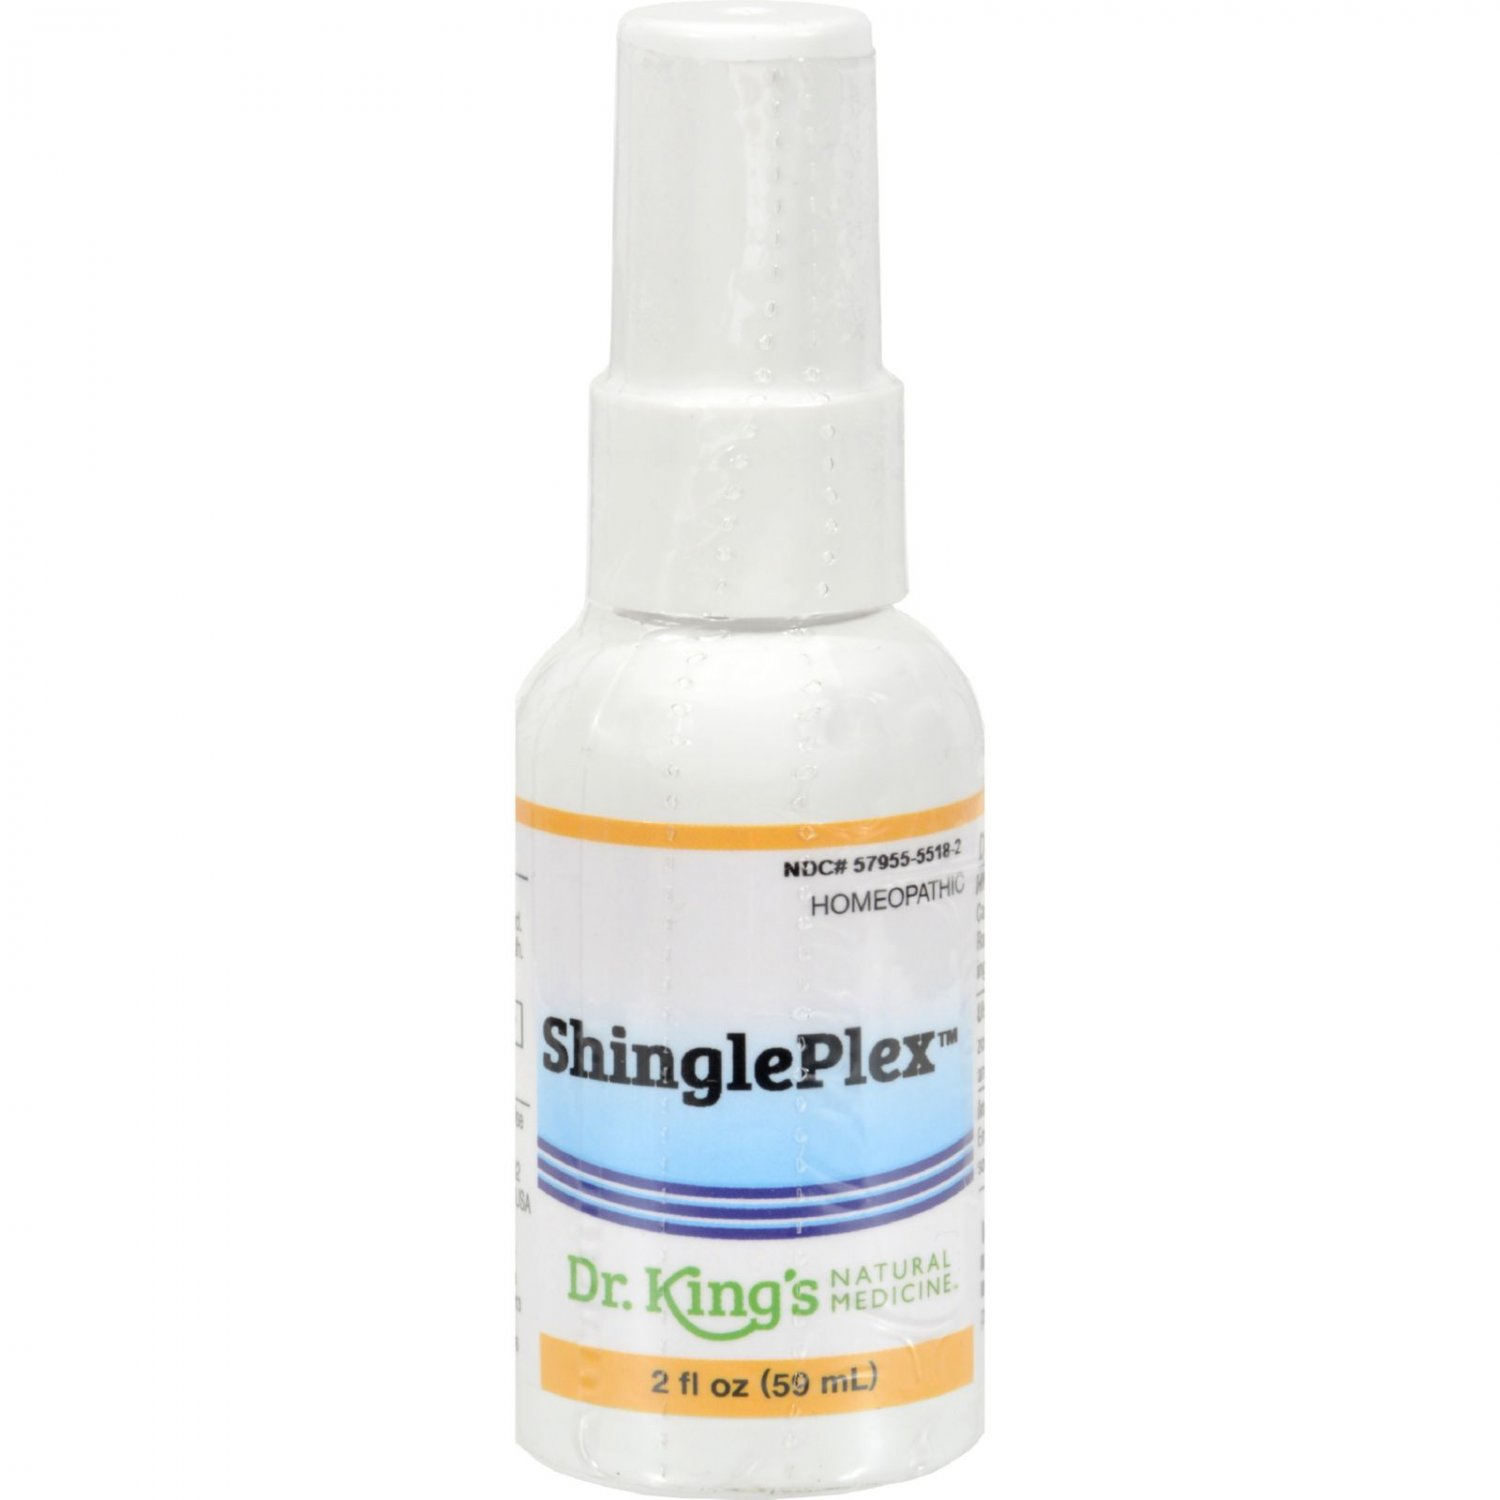 King Bio Homeopathic Natural Medicine ShinglePlex - 2 fl oz